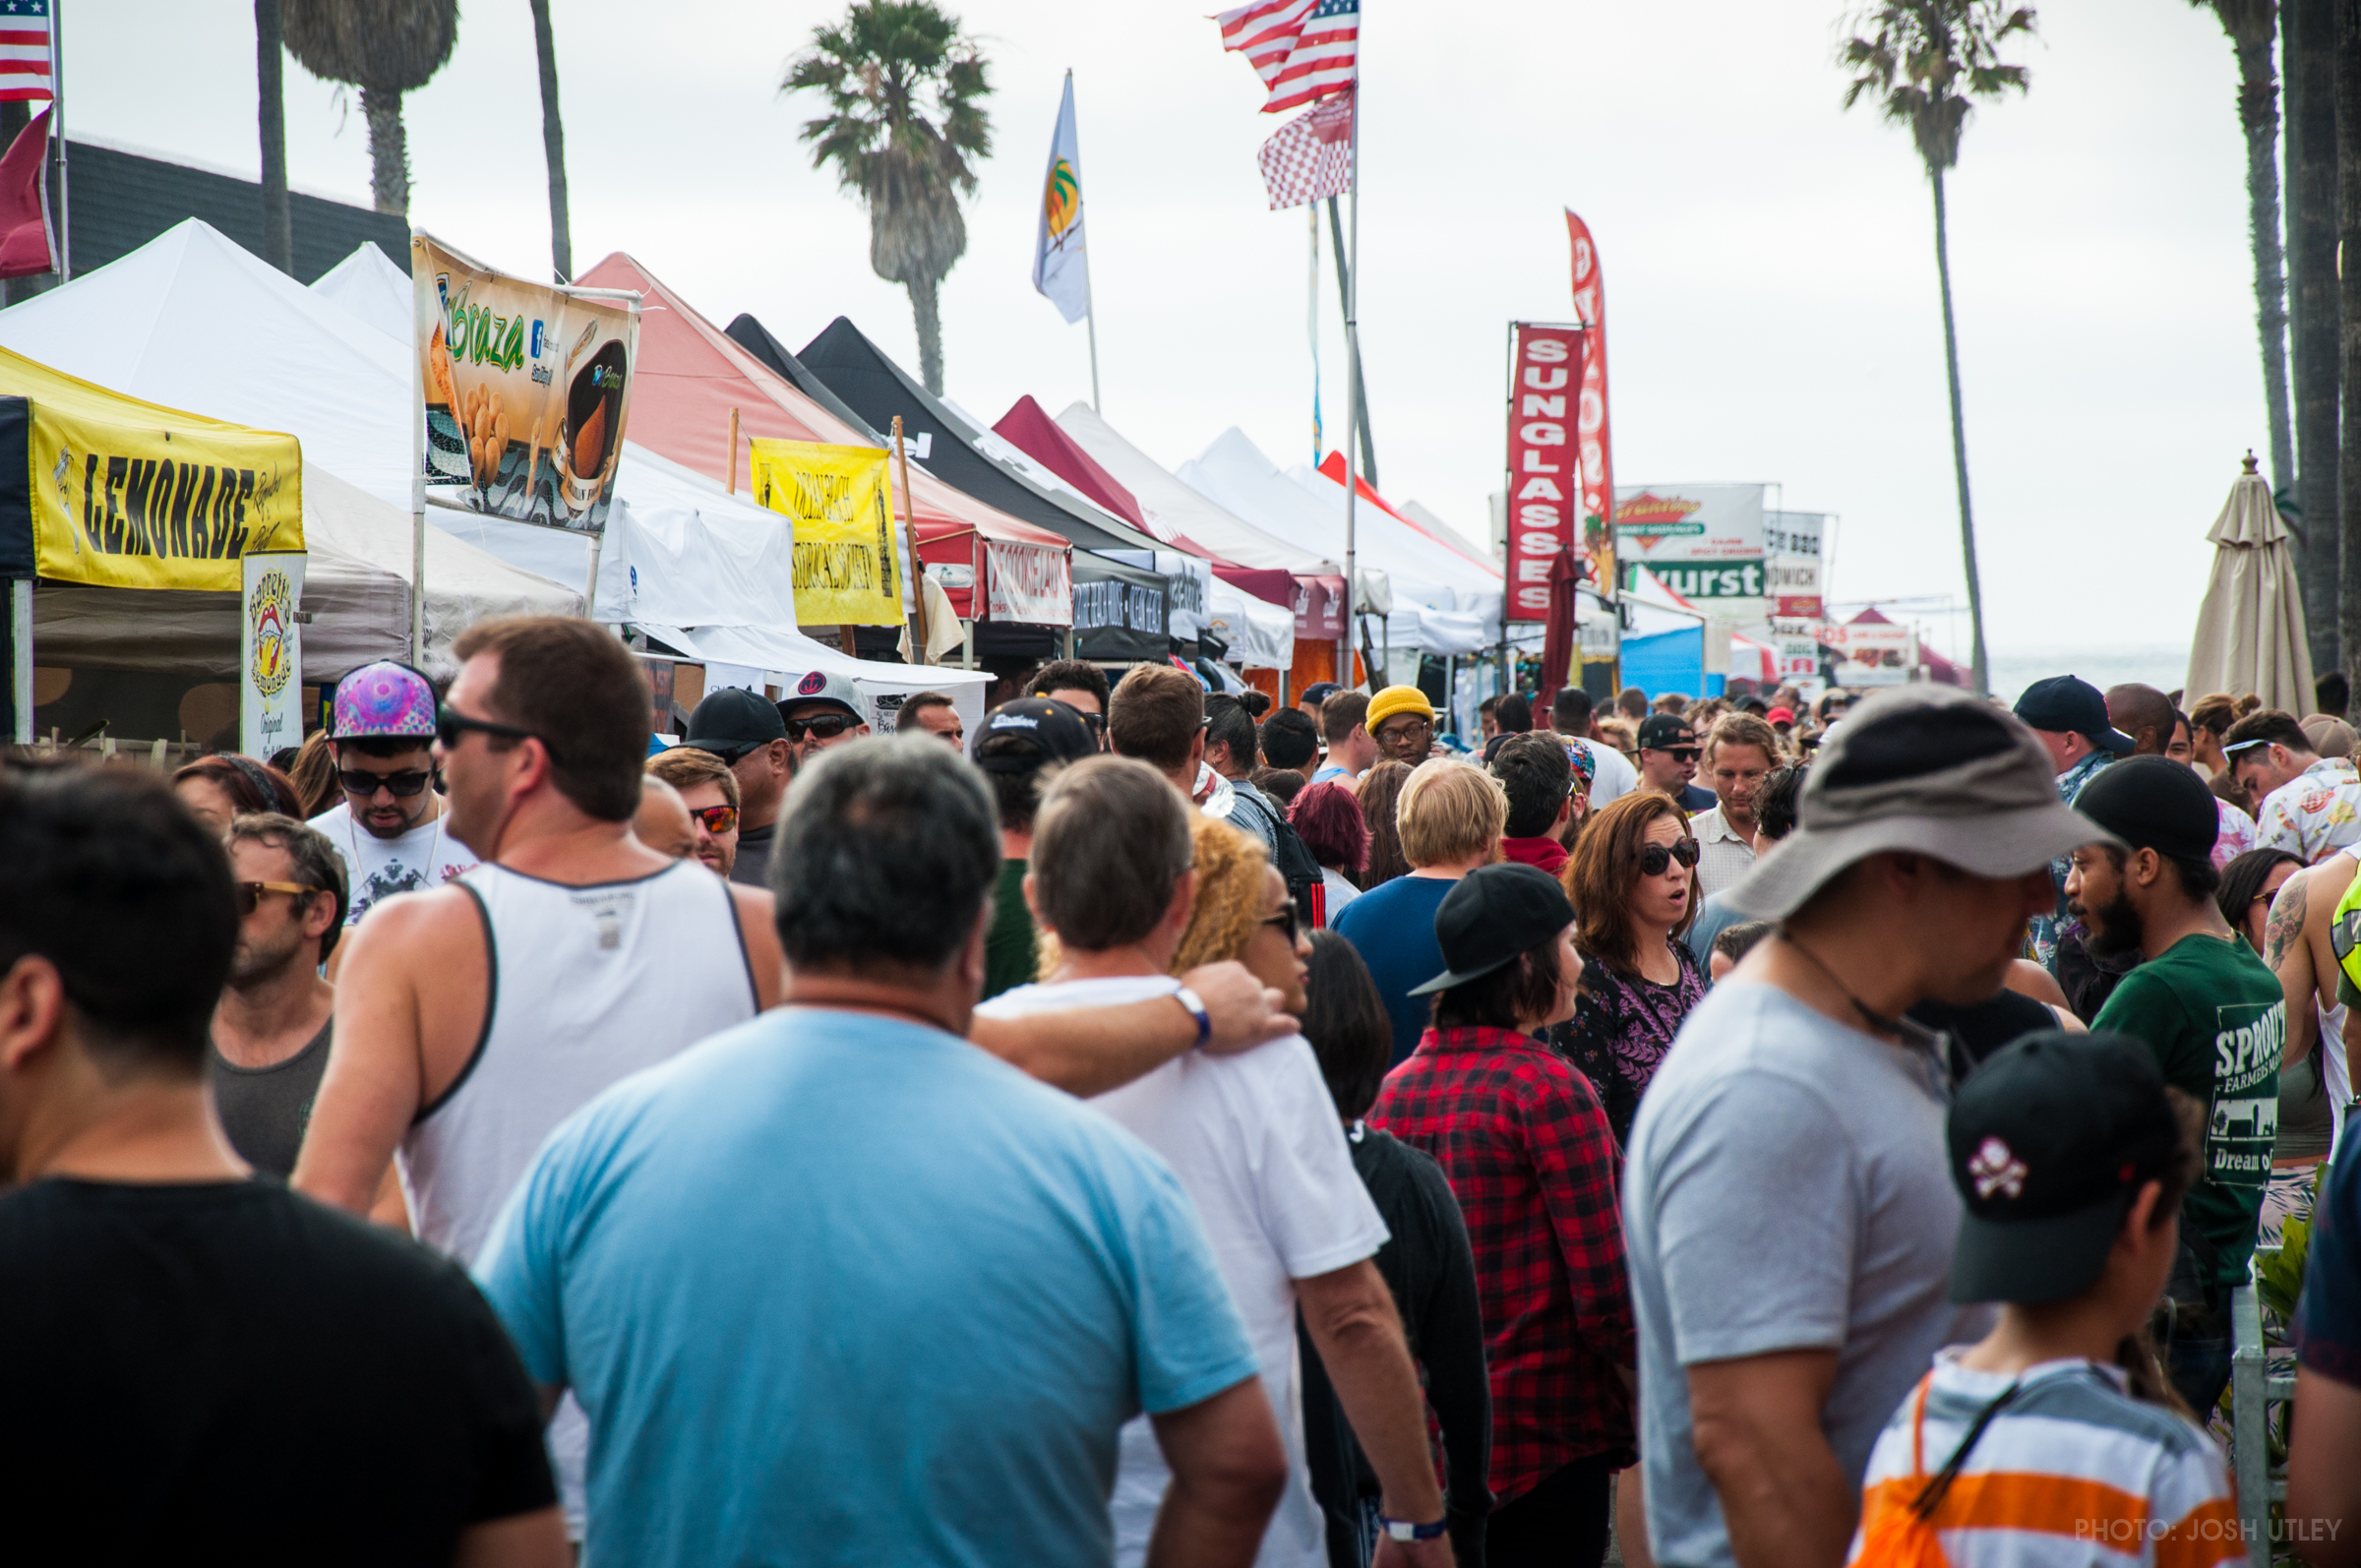 Street Fair & Chili Cook-Off Festival 2017